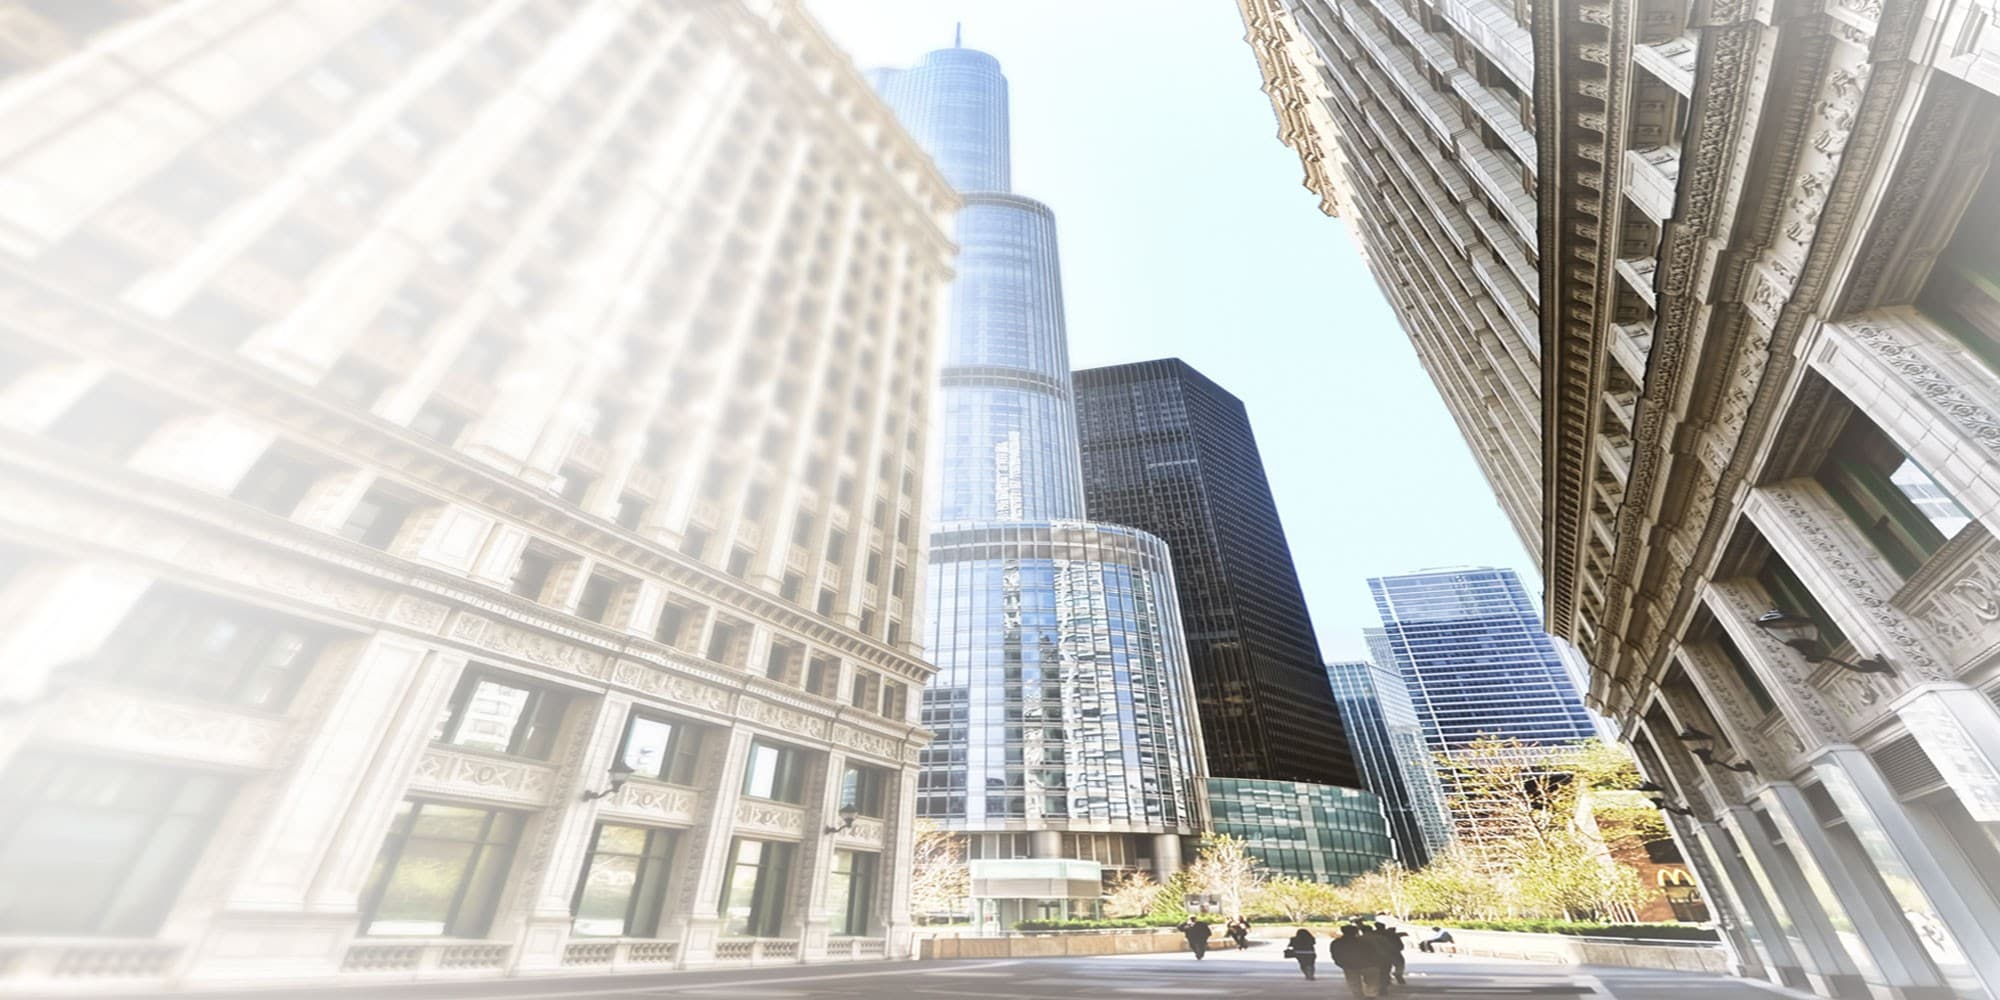 A street view of Chicago